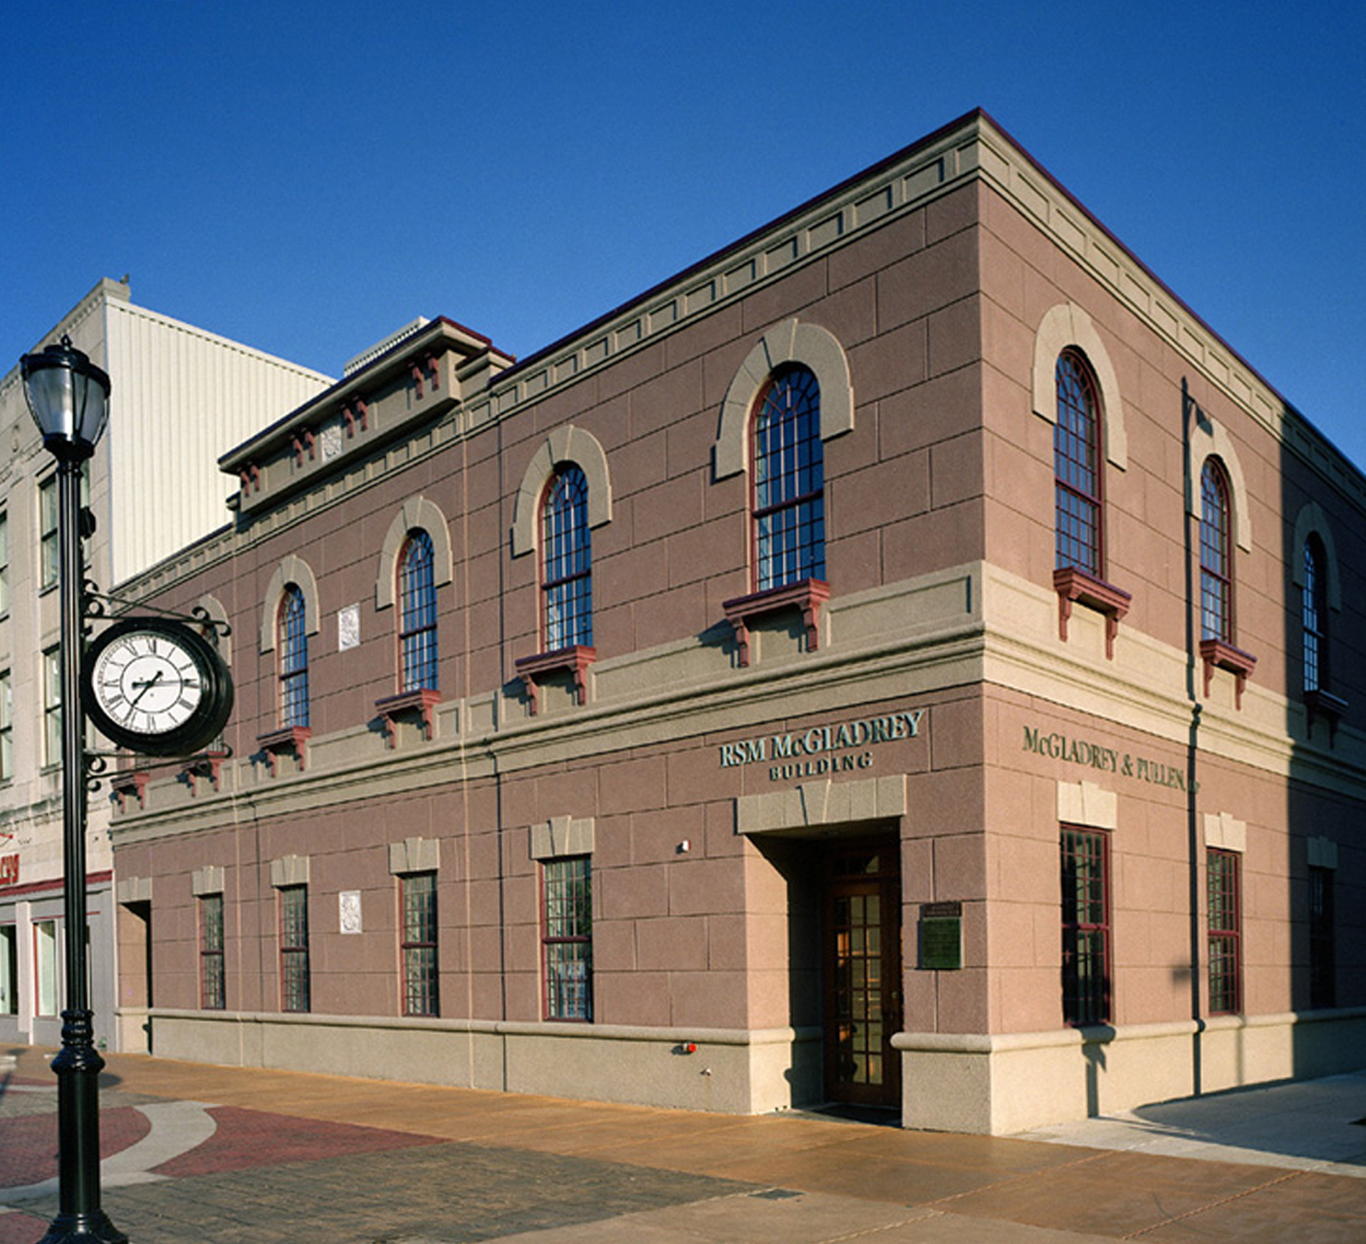 Evan Lloyd Architects provided office architectural services for the South Old State Capitol Plaza in Springfield, Illinois. Evan Lloyd Architect's renovation designed the adaptive re-use of an abandoned wood, steel and masonry building in historic downtown Springfield for professional offices.